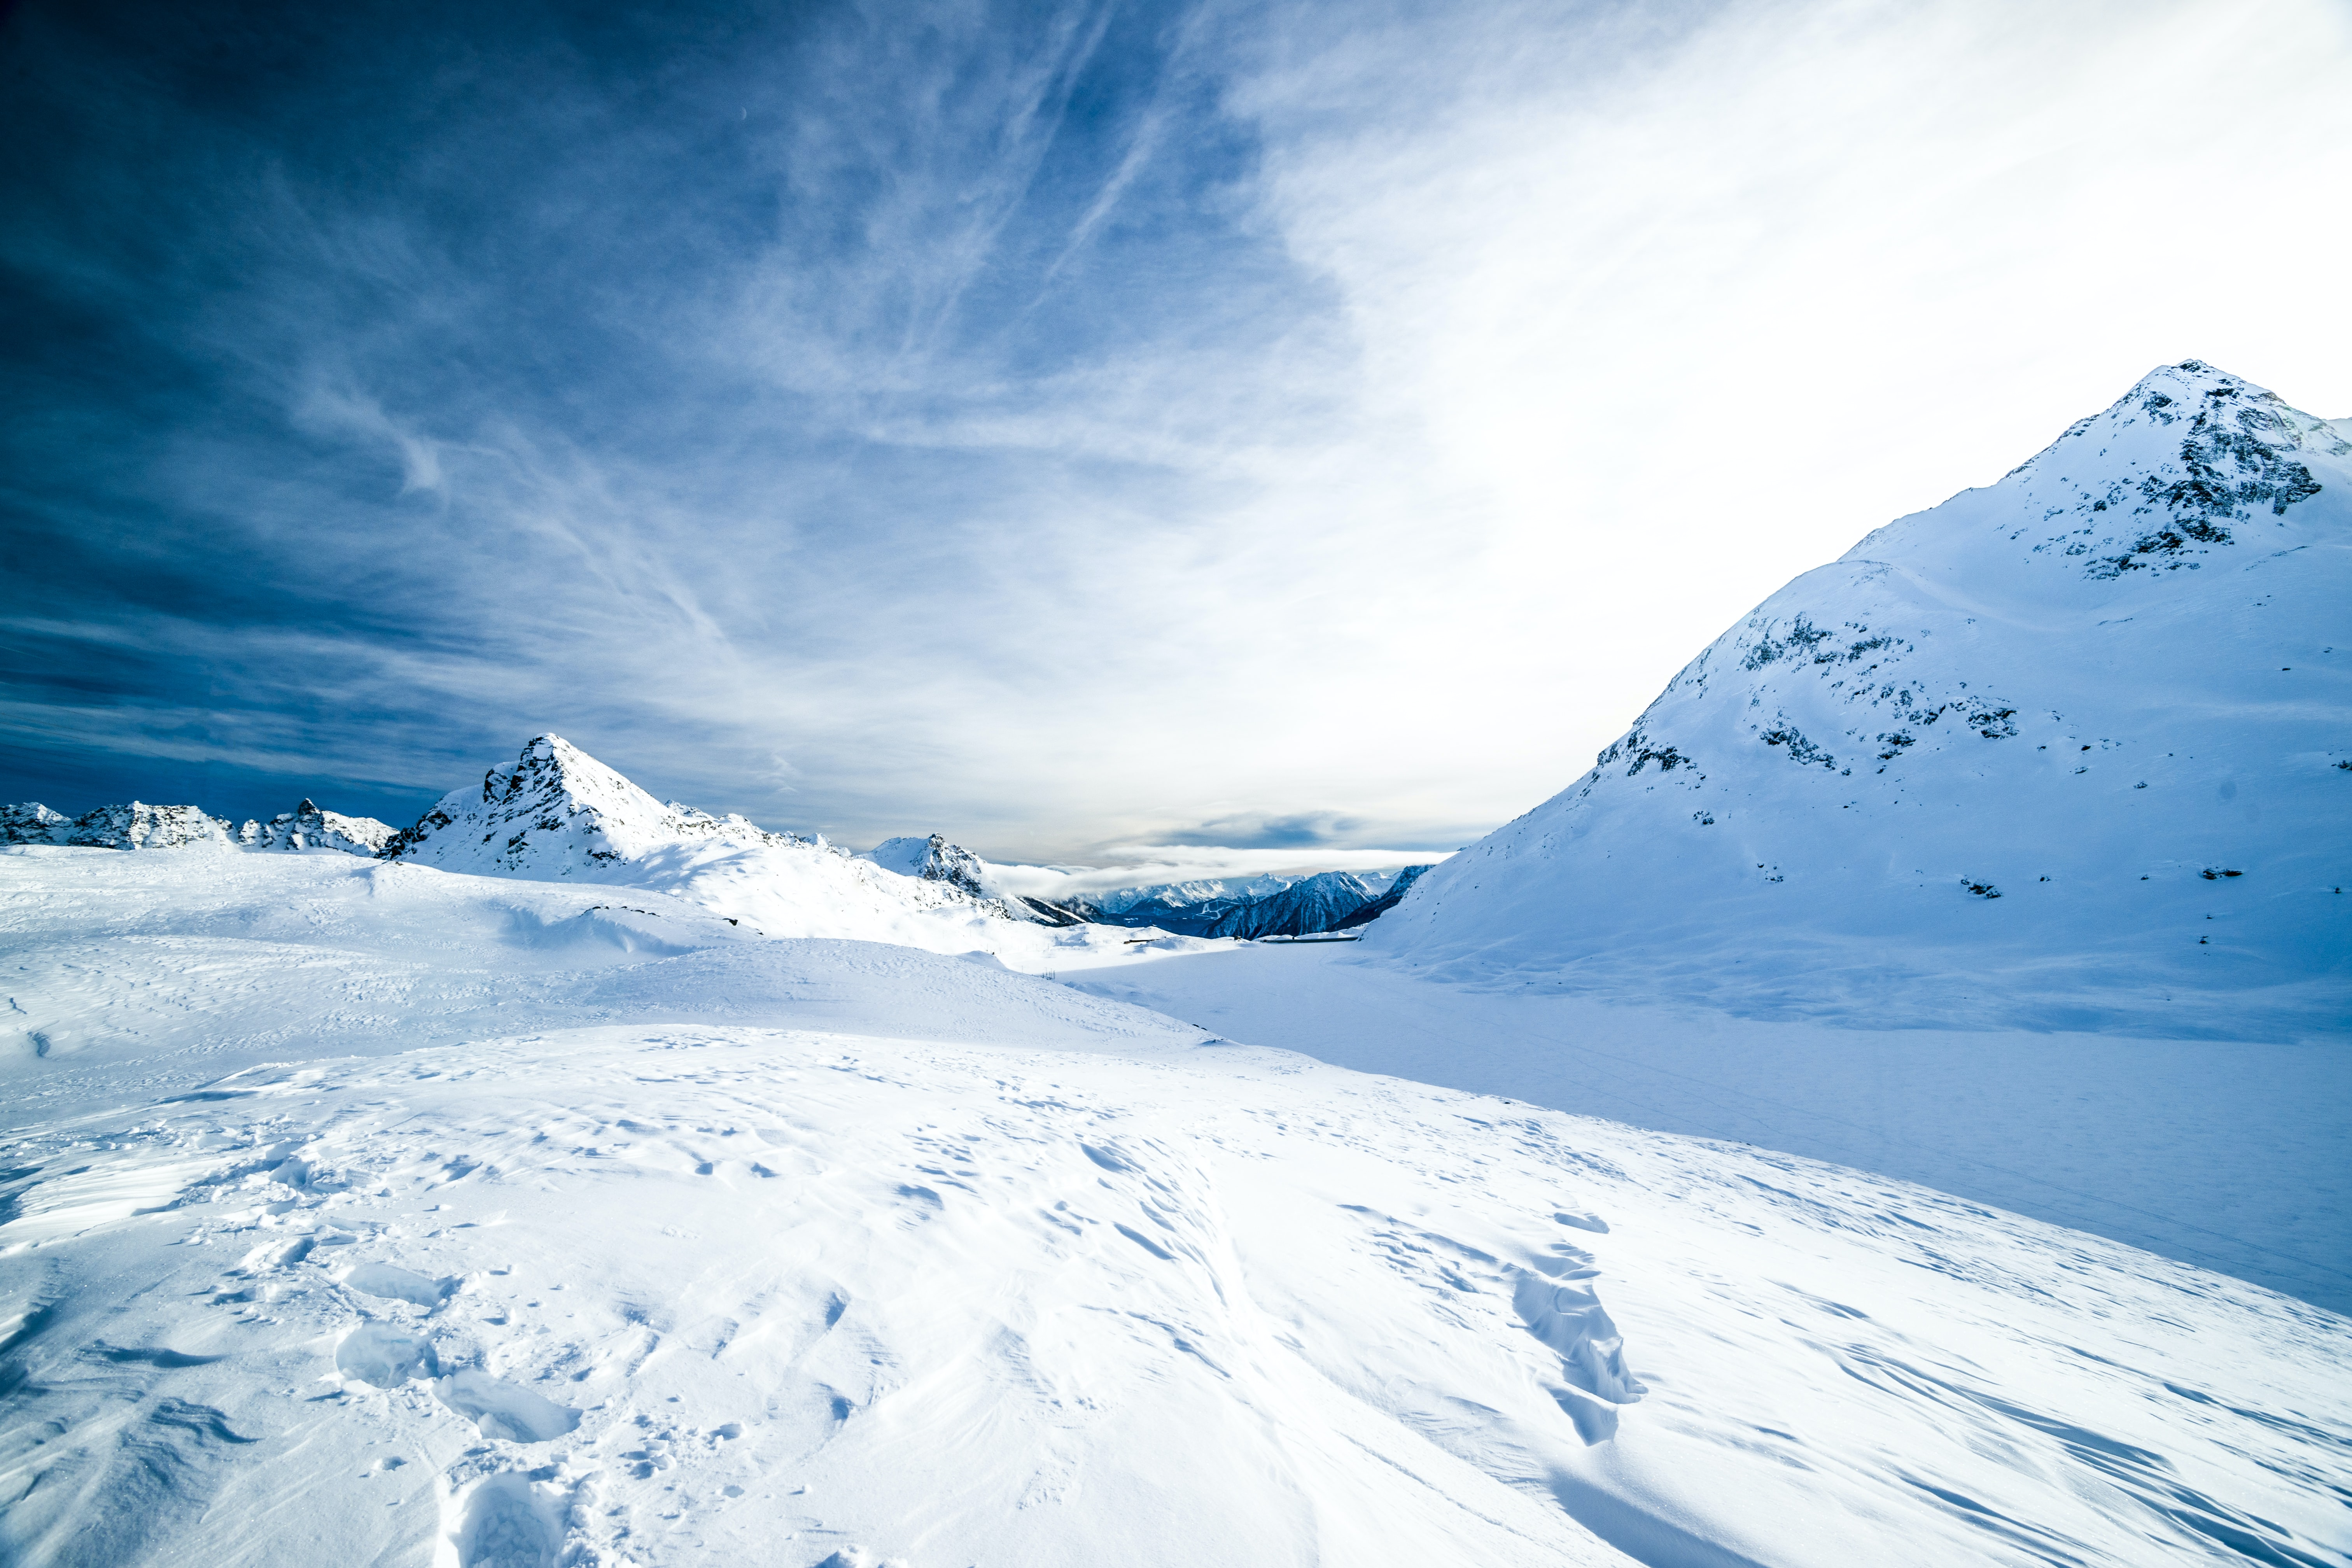 A frozen landscape with mountains coated with a thick layer of snow